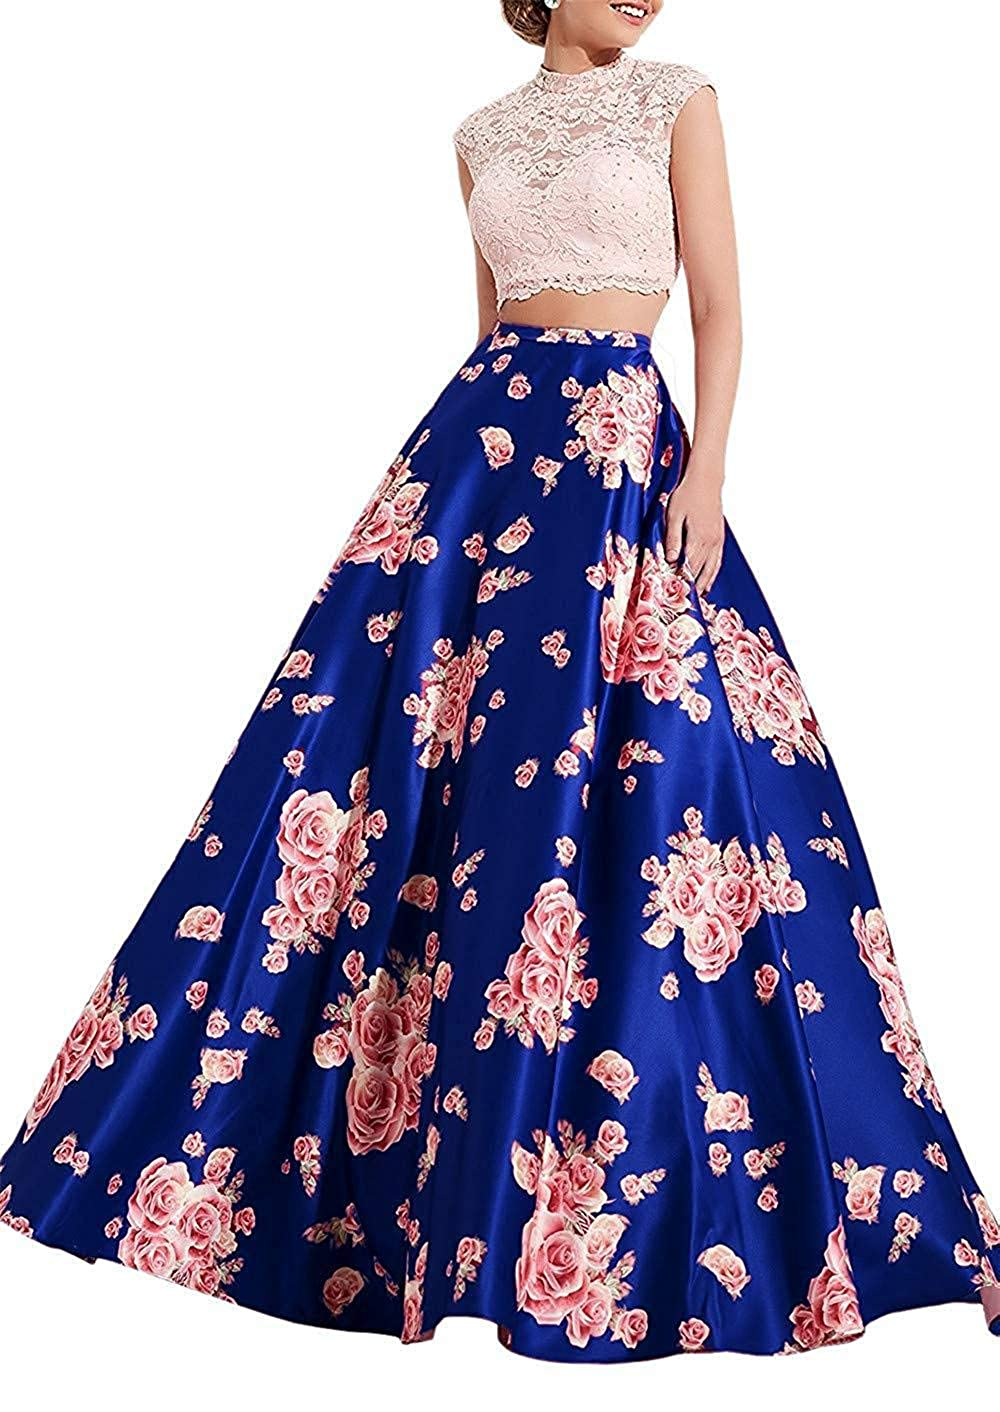 Royal bluee Sophie Women's Floral 2 Piece Prom Dresses 2019 Long High Neck Satin Evening Ball Gown S295